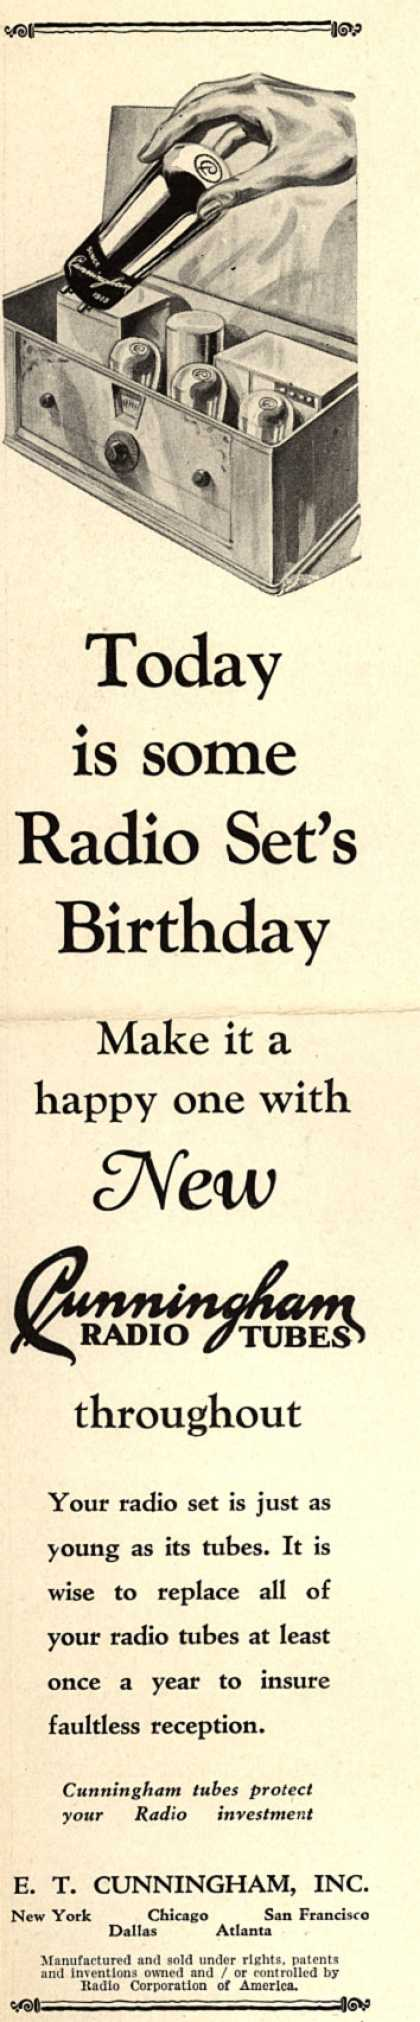 E.T. Cunningham's Radio Tubes – Today is some Radio Set's Birthday (1929)